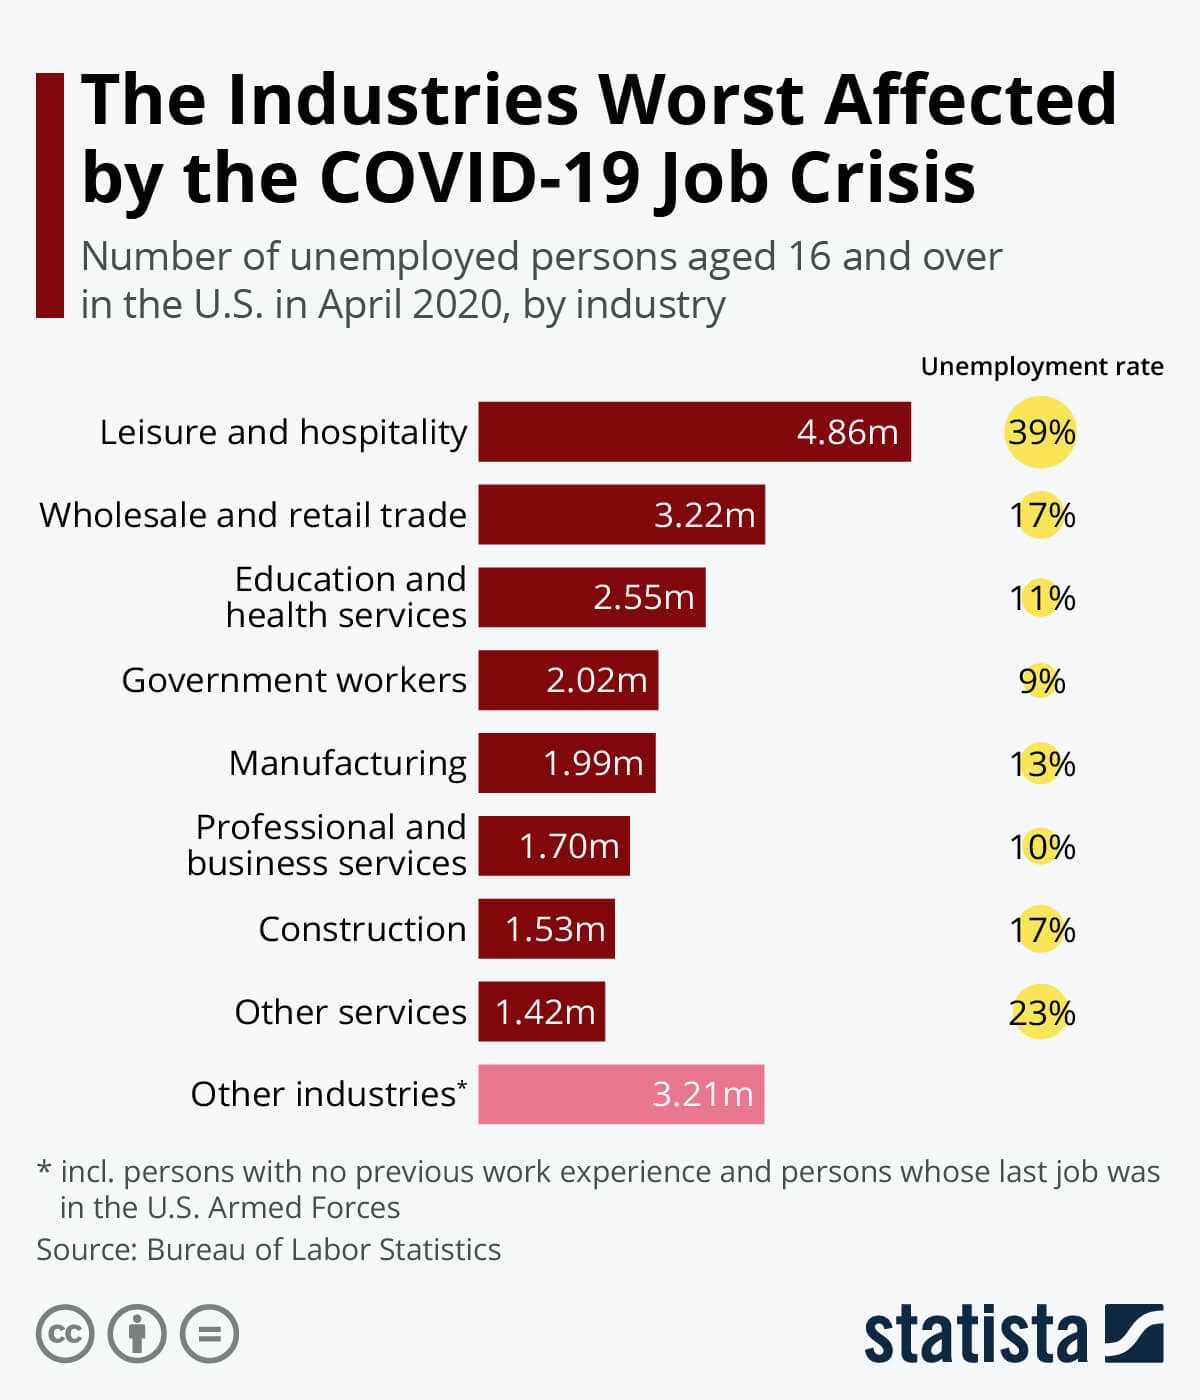 chart of industries worst affected by the COVID-19 crisis